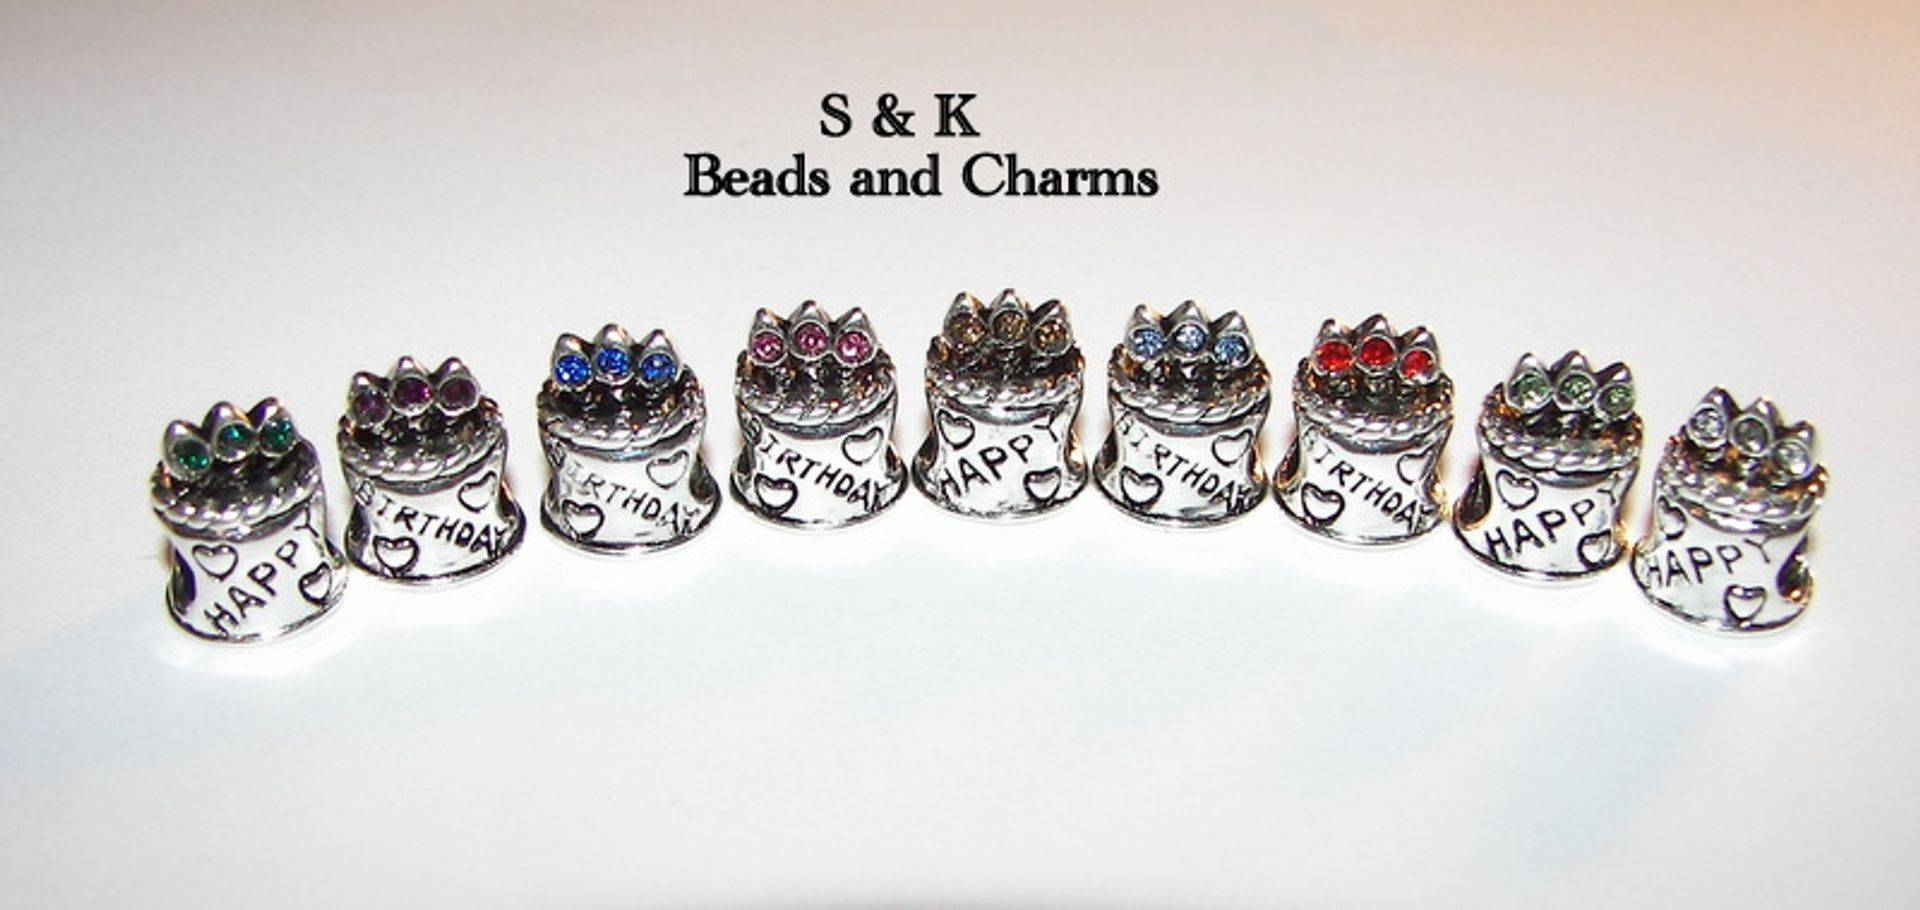 Happy birthday cake charms to fit pandora from S&K beads and Charms